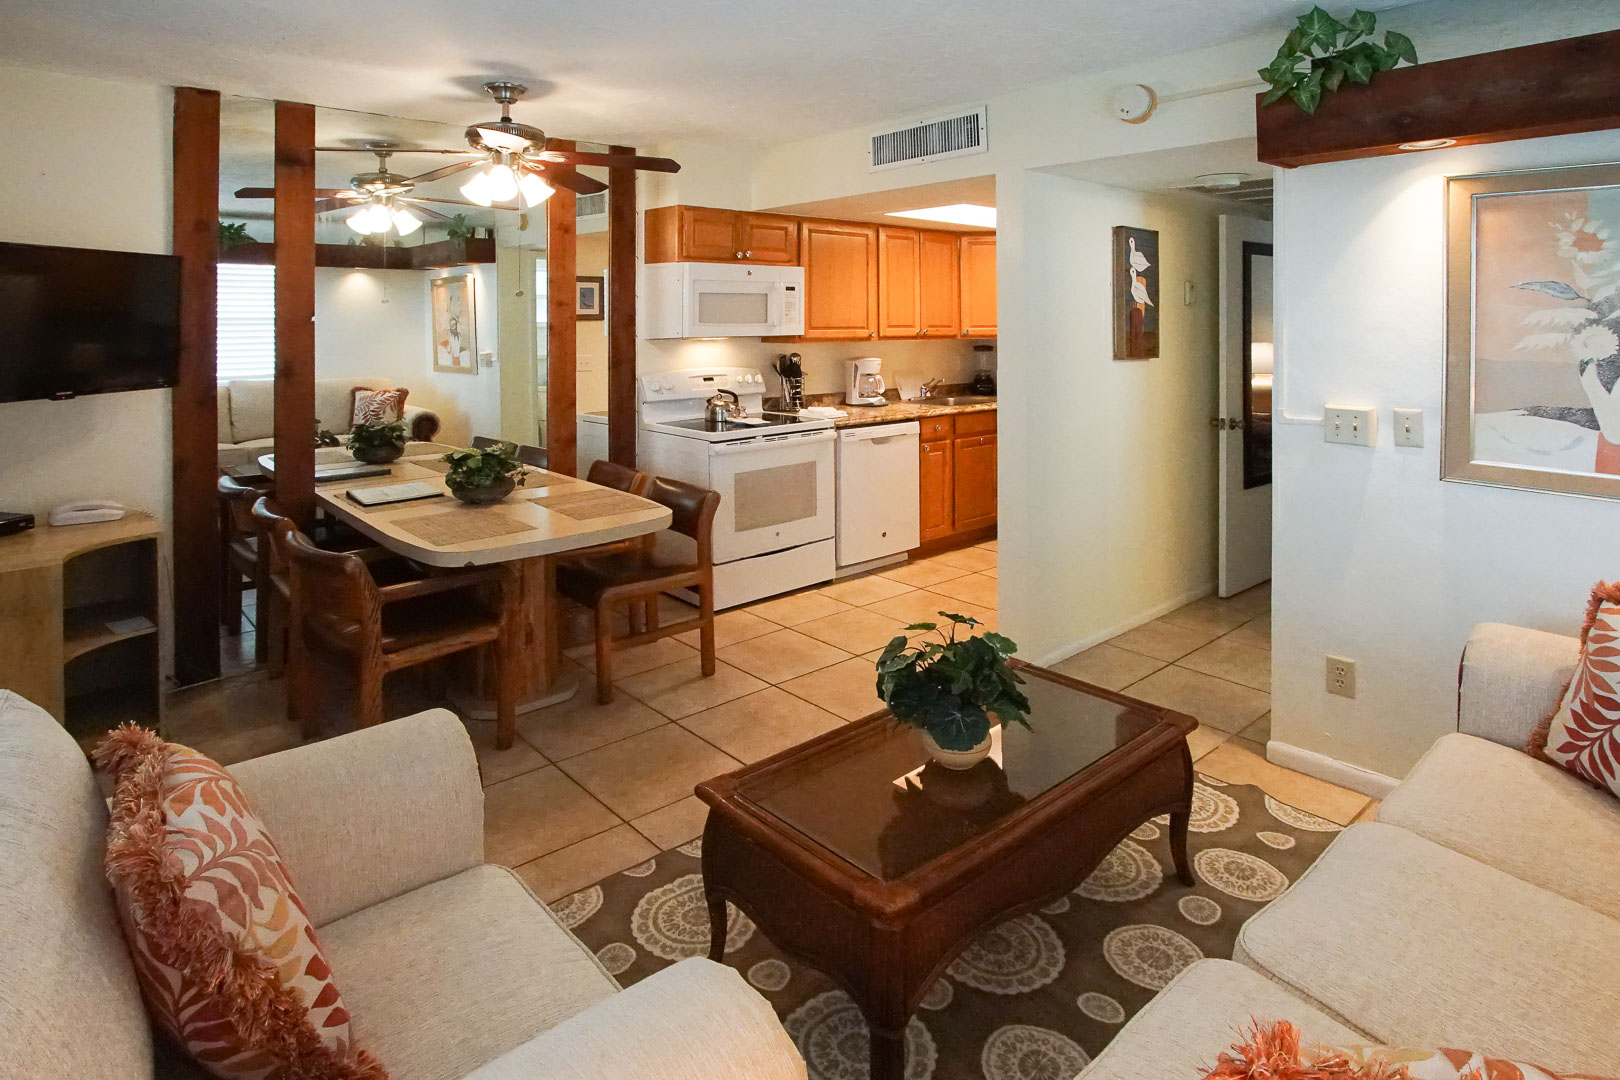 A traditional 1 Bedroom unit at VRI's Sand Dune Shores in Florida.